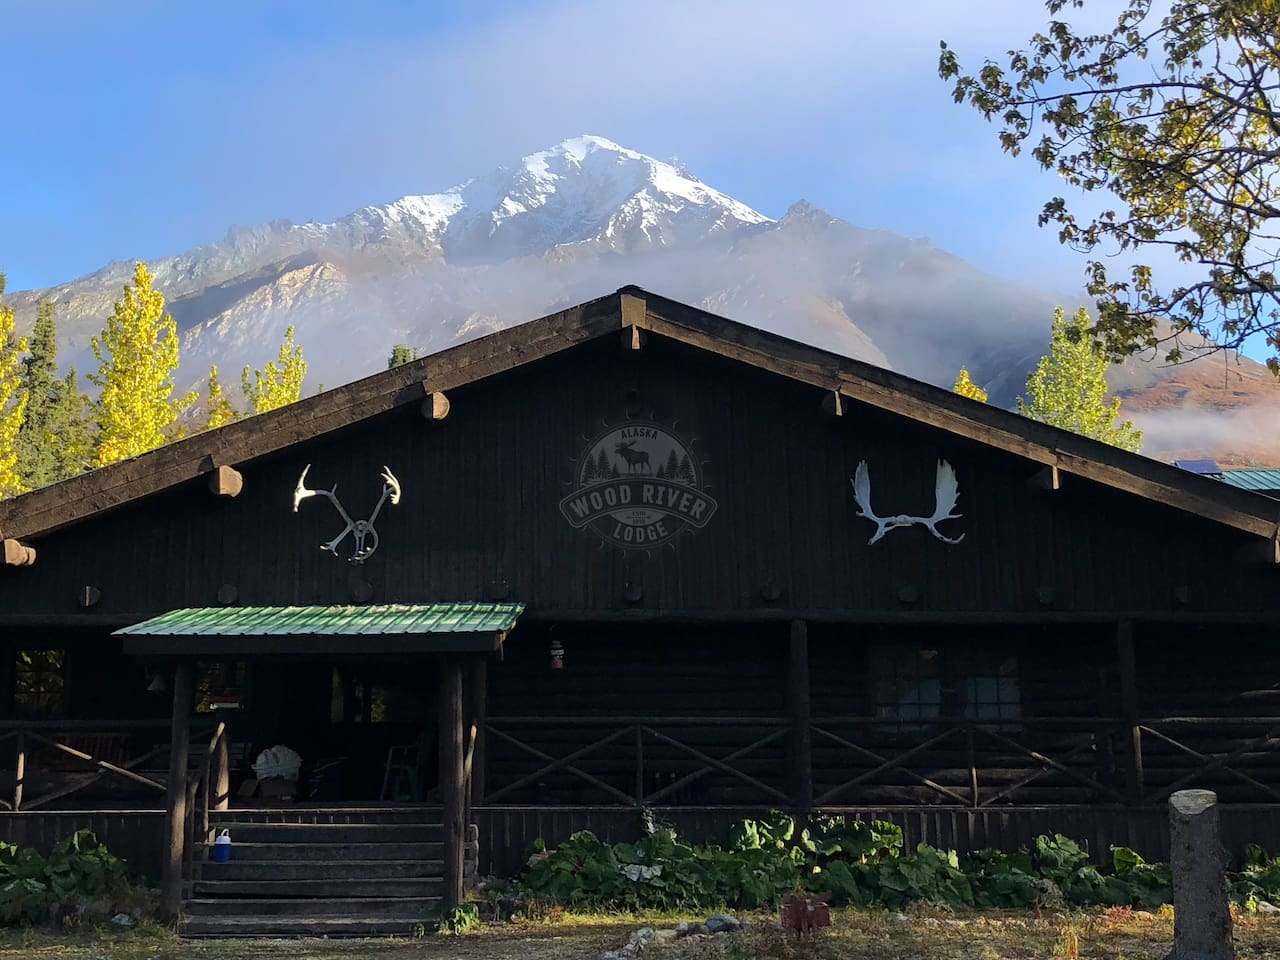 Main Lodge Building